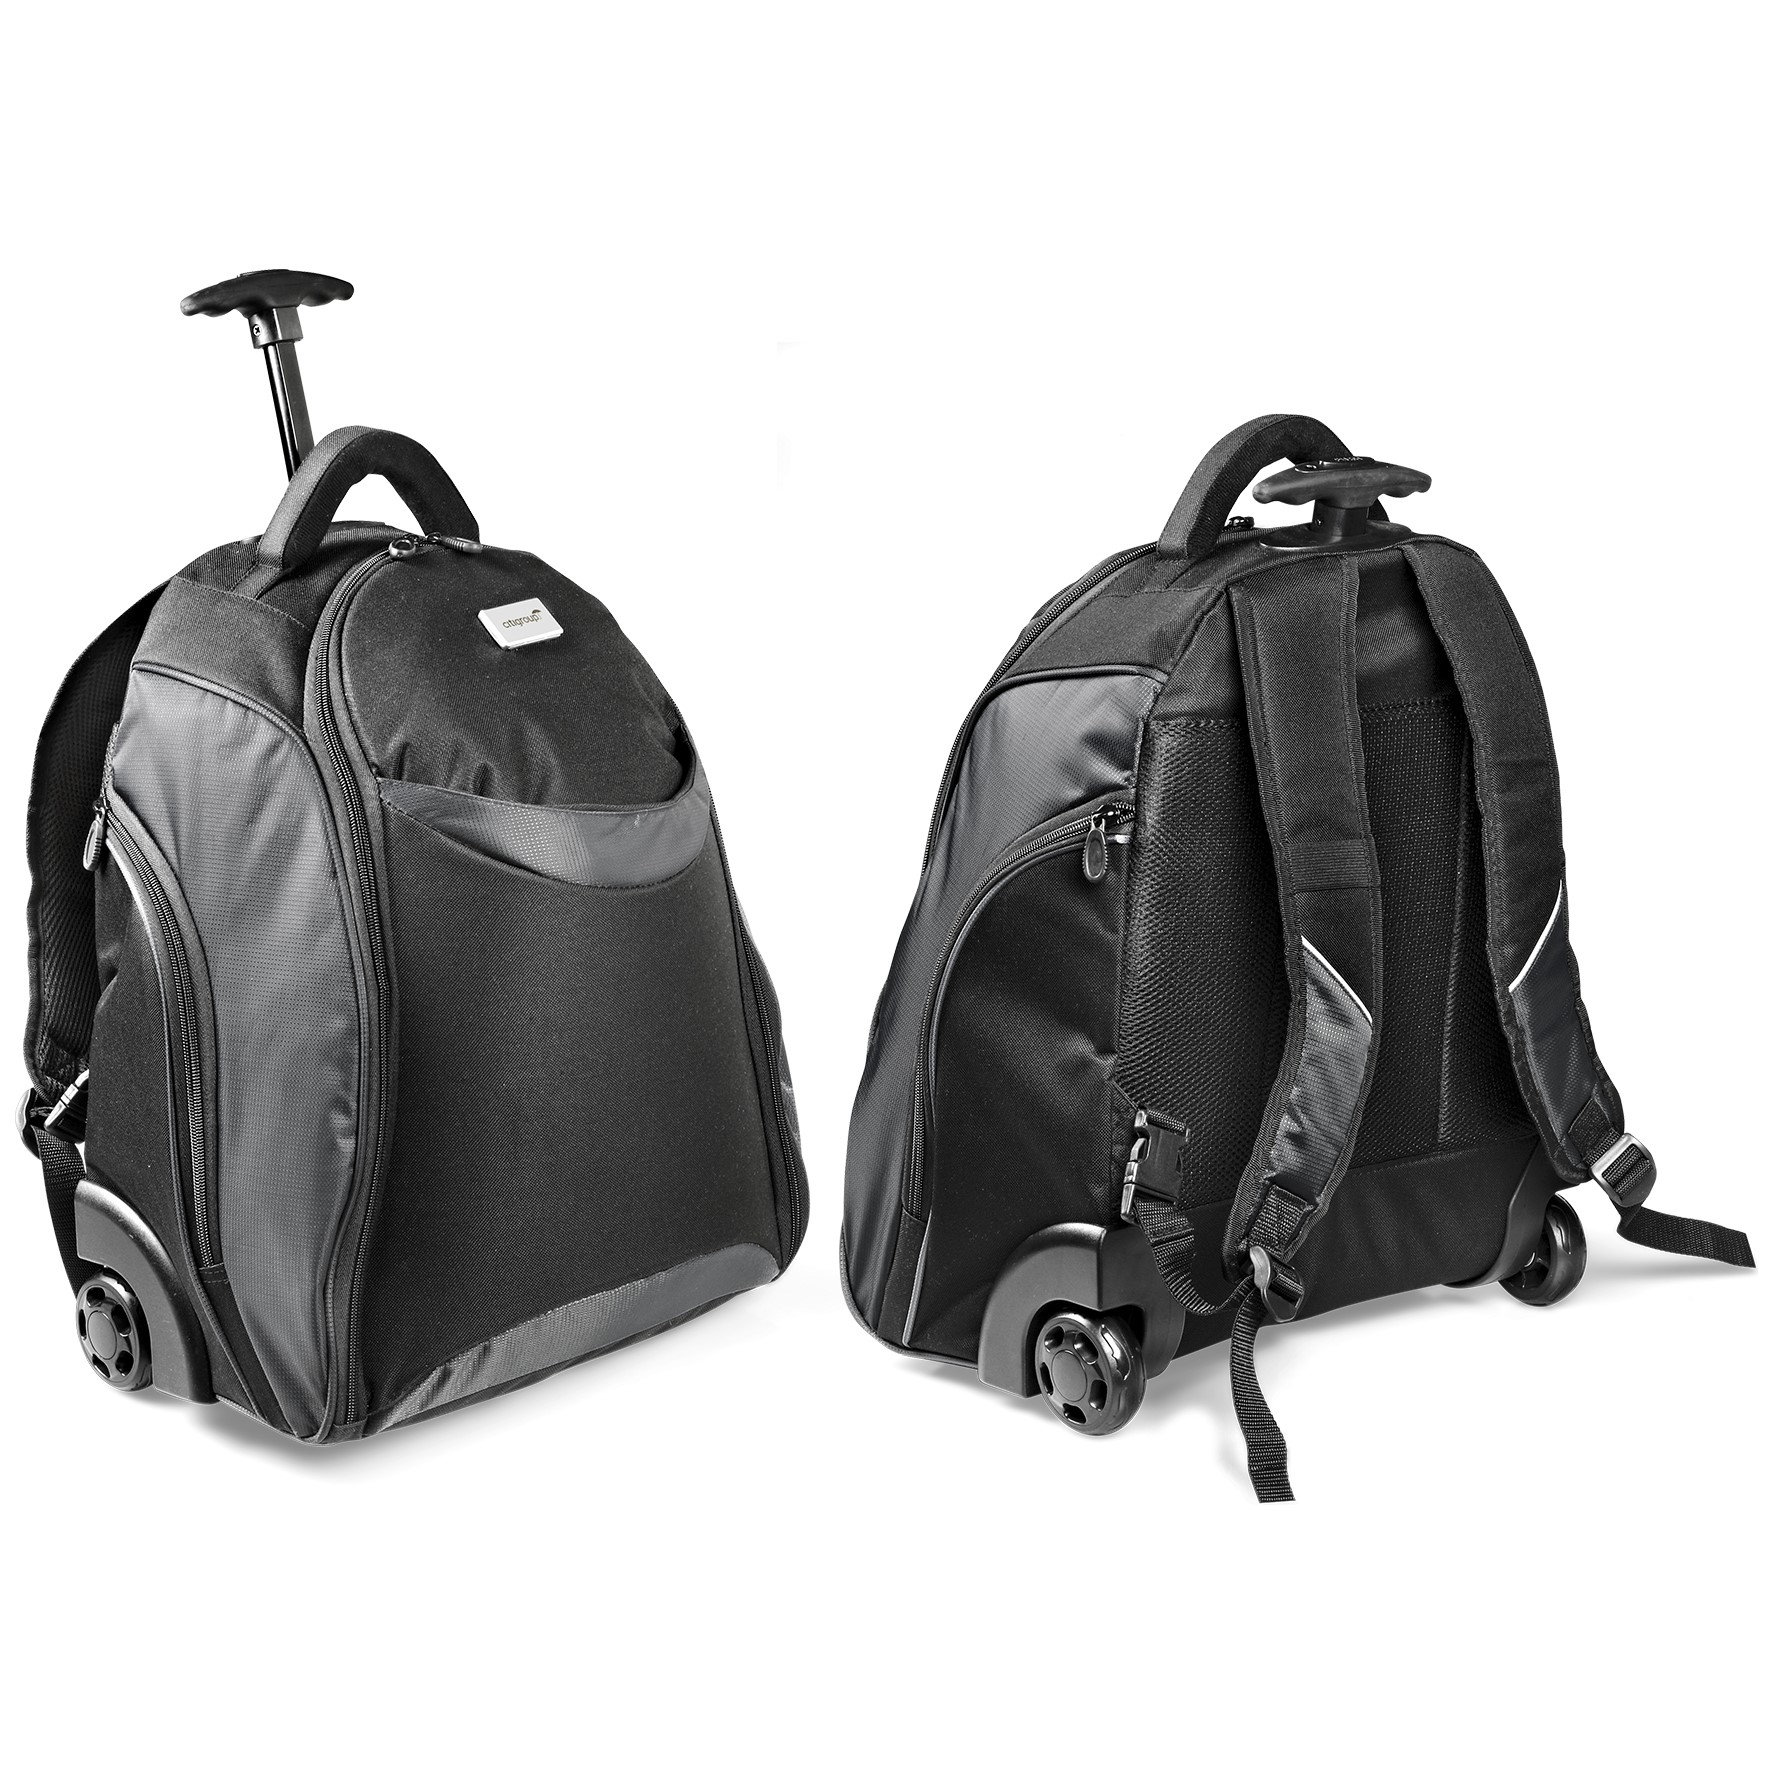 51b72a1419d Elleven Tech Trolley Backpack | 11-002